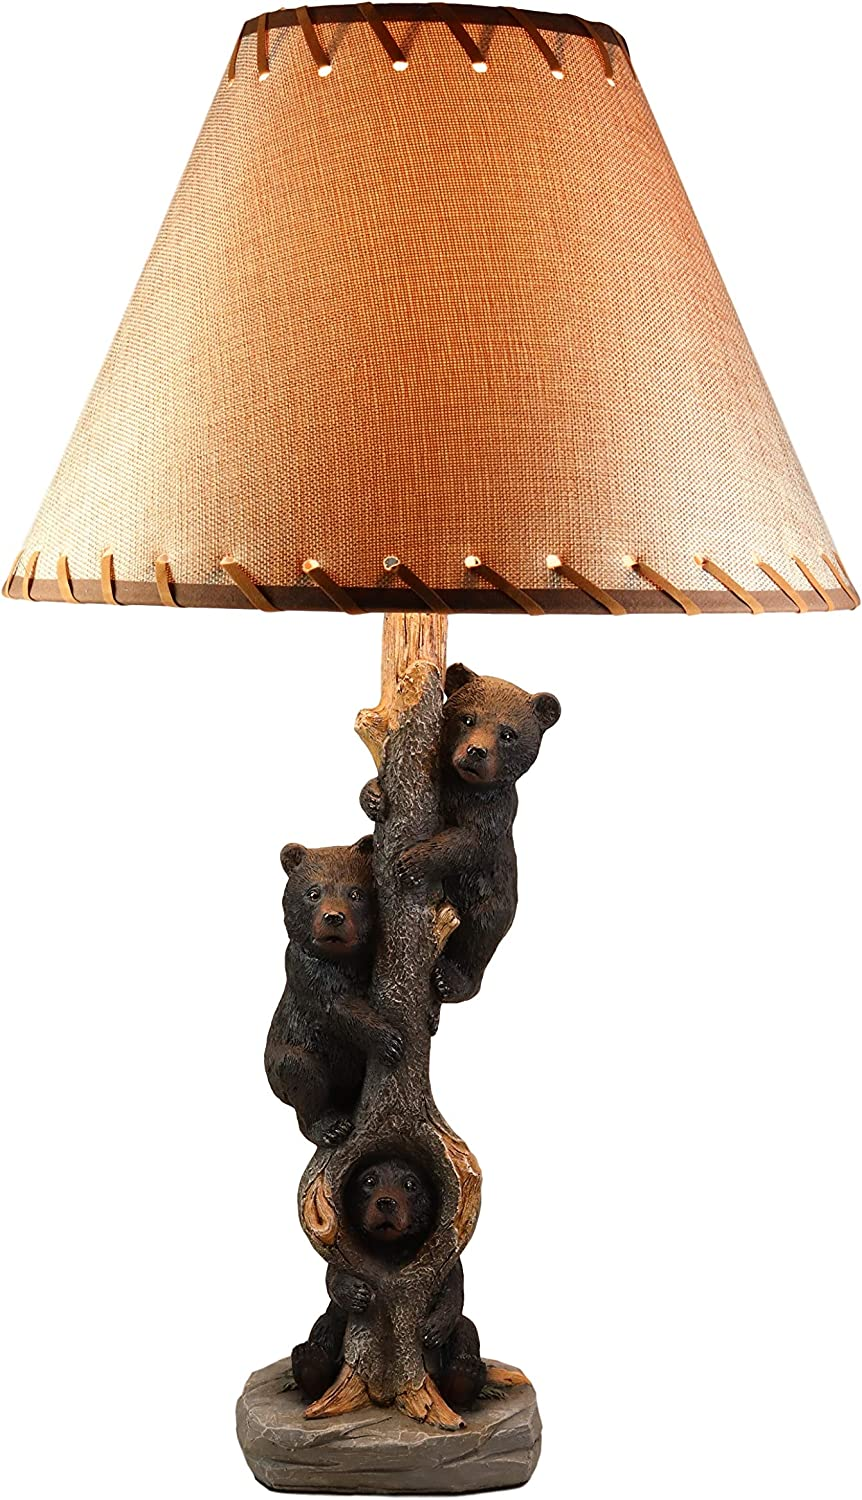 """Ebros Three Forest Musketeers Whimsical Black Bear Cubs Climbing Tree Table Lamp Statue with Burlap Shade 24""""High Wildlife Rustic Cabin Lodge Decor Forest Bears Family Desktop Lamps"""